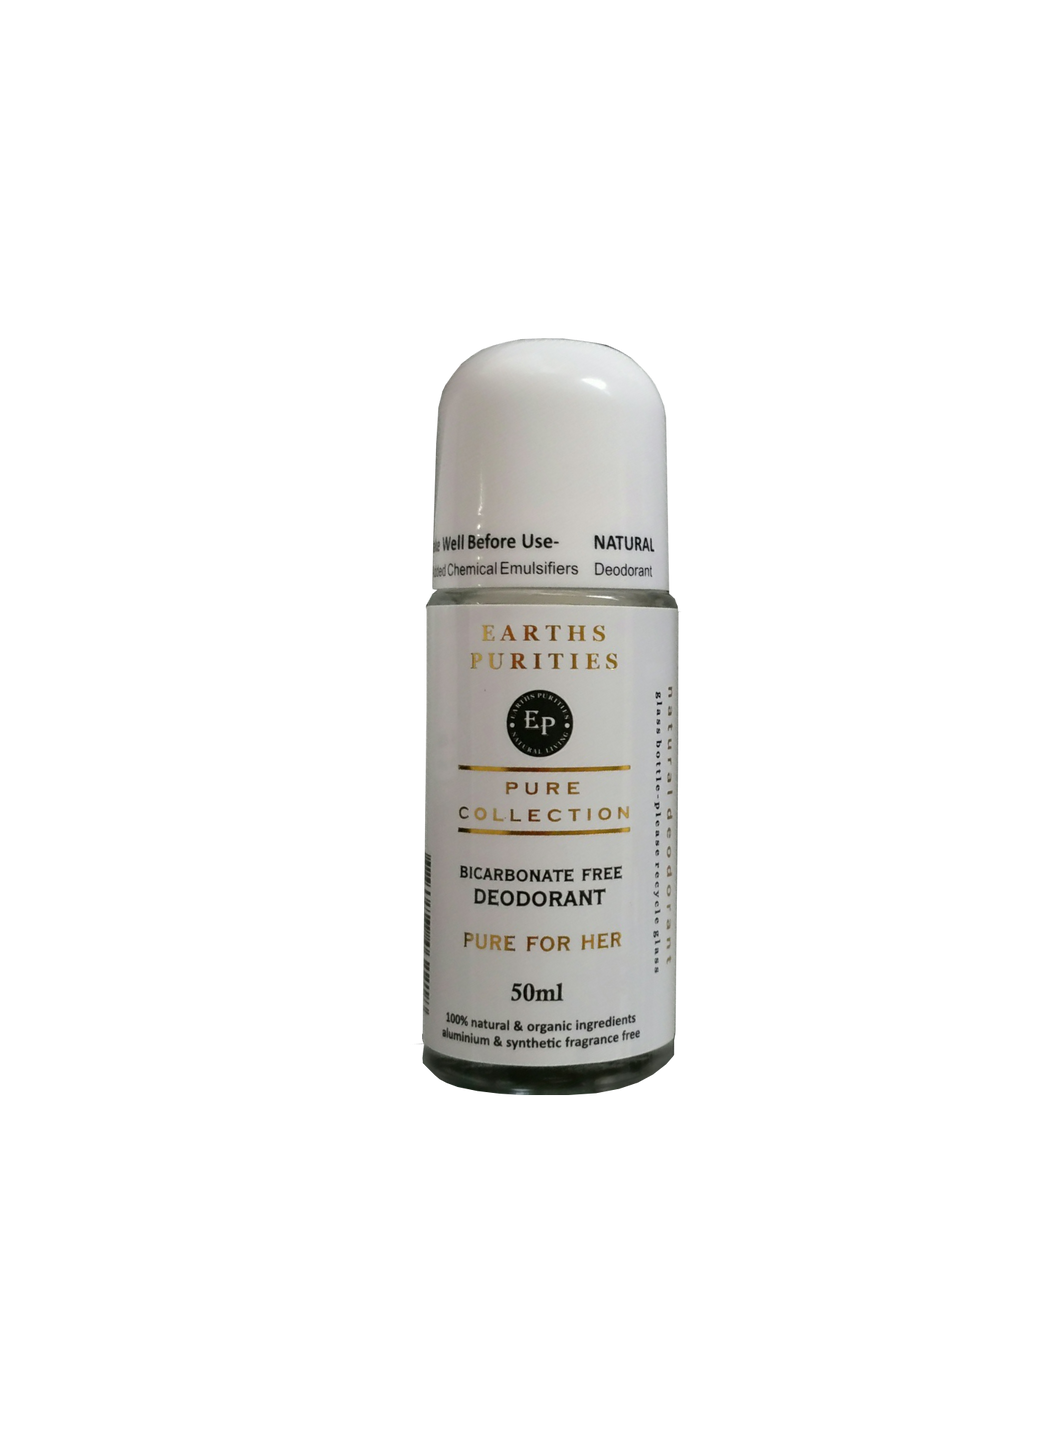 Earths Purities For Her Bi-Carb Free Deodorant 50g